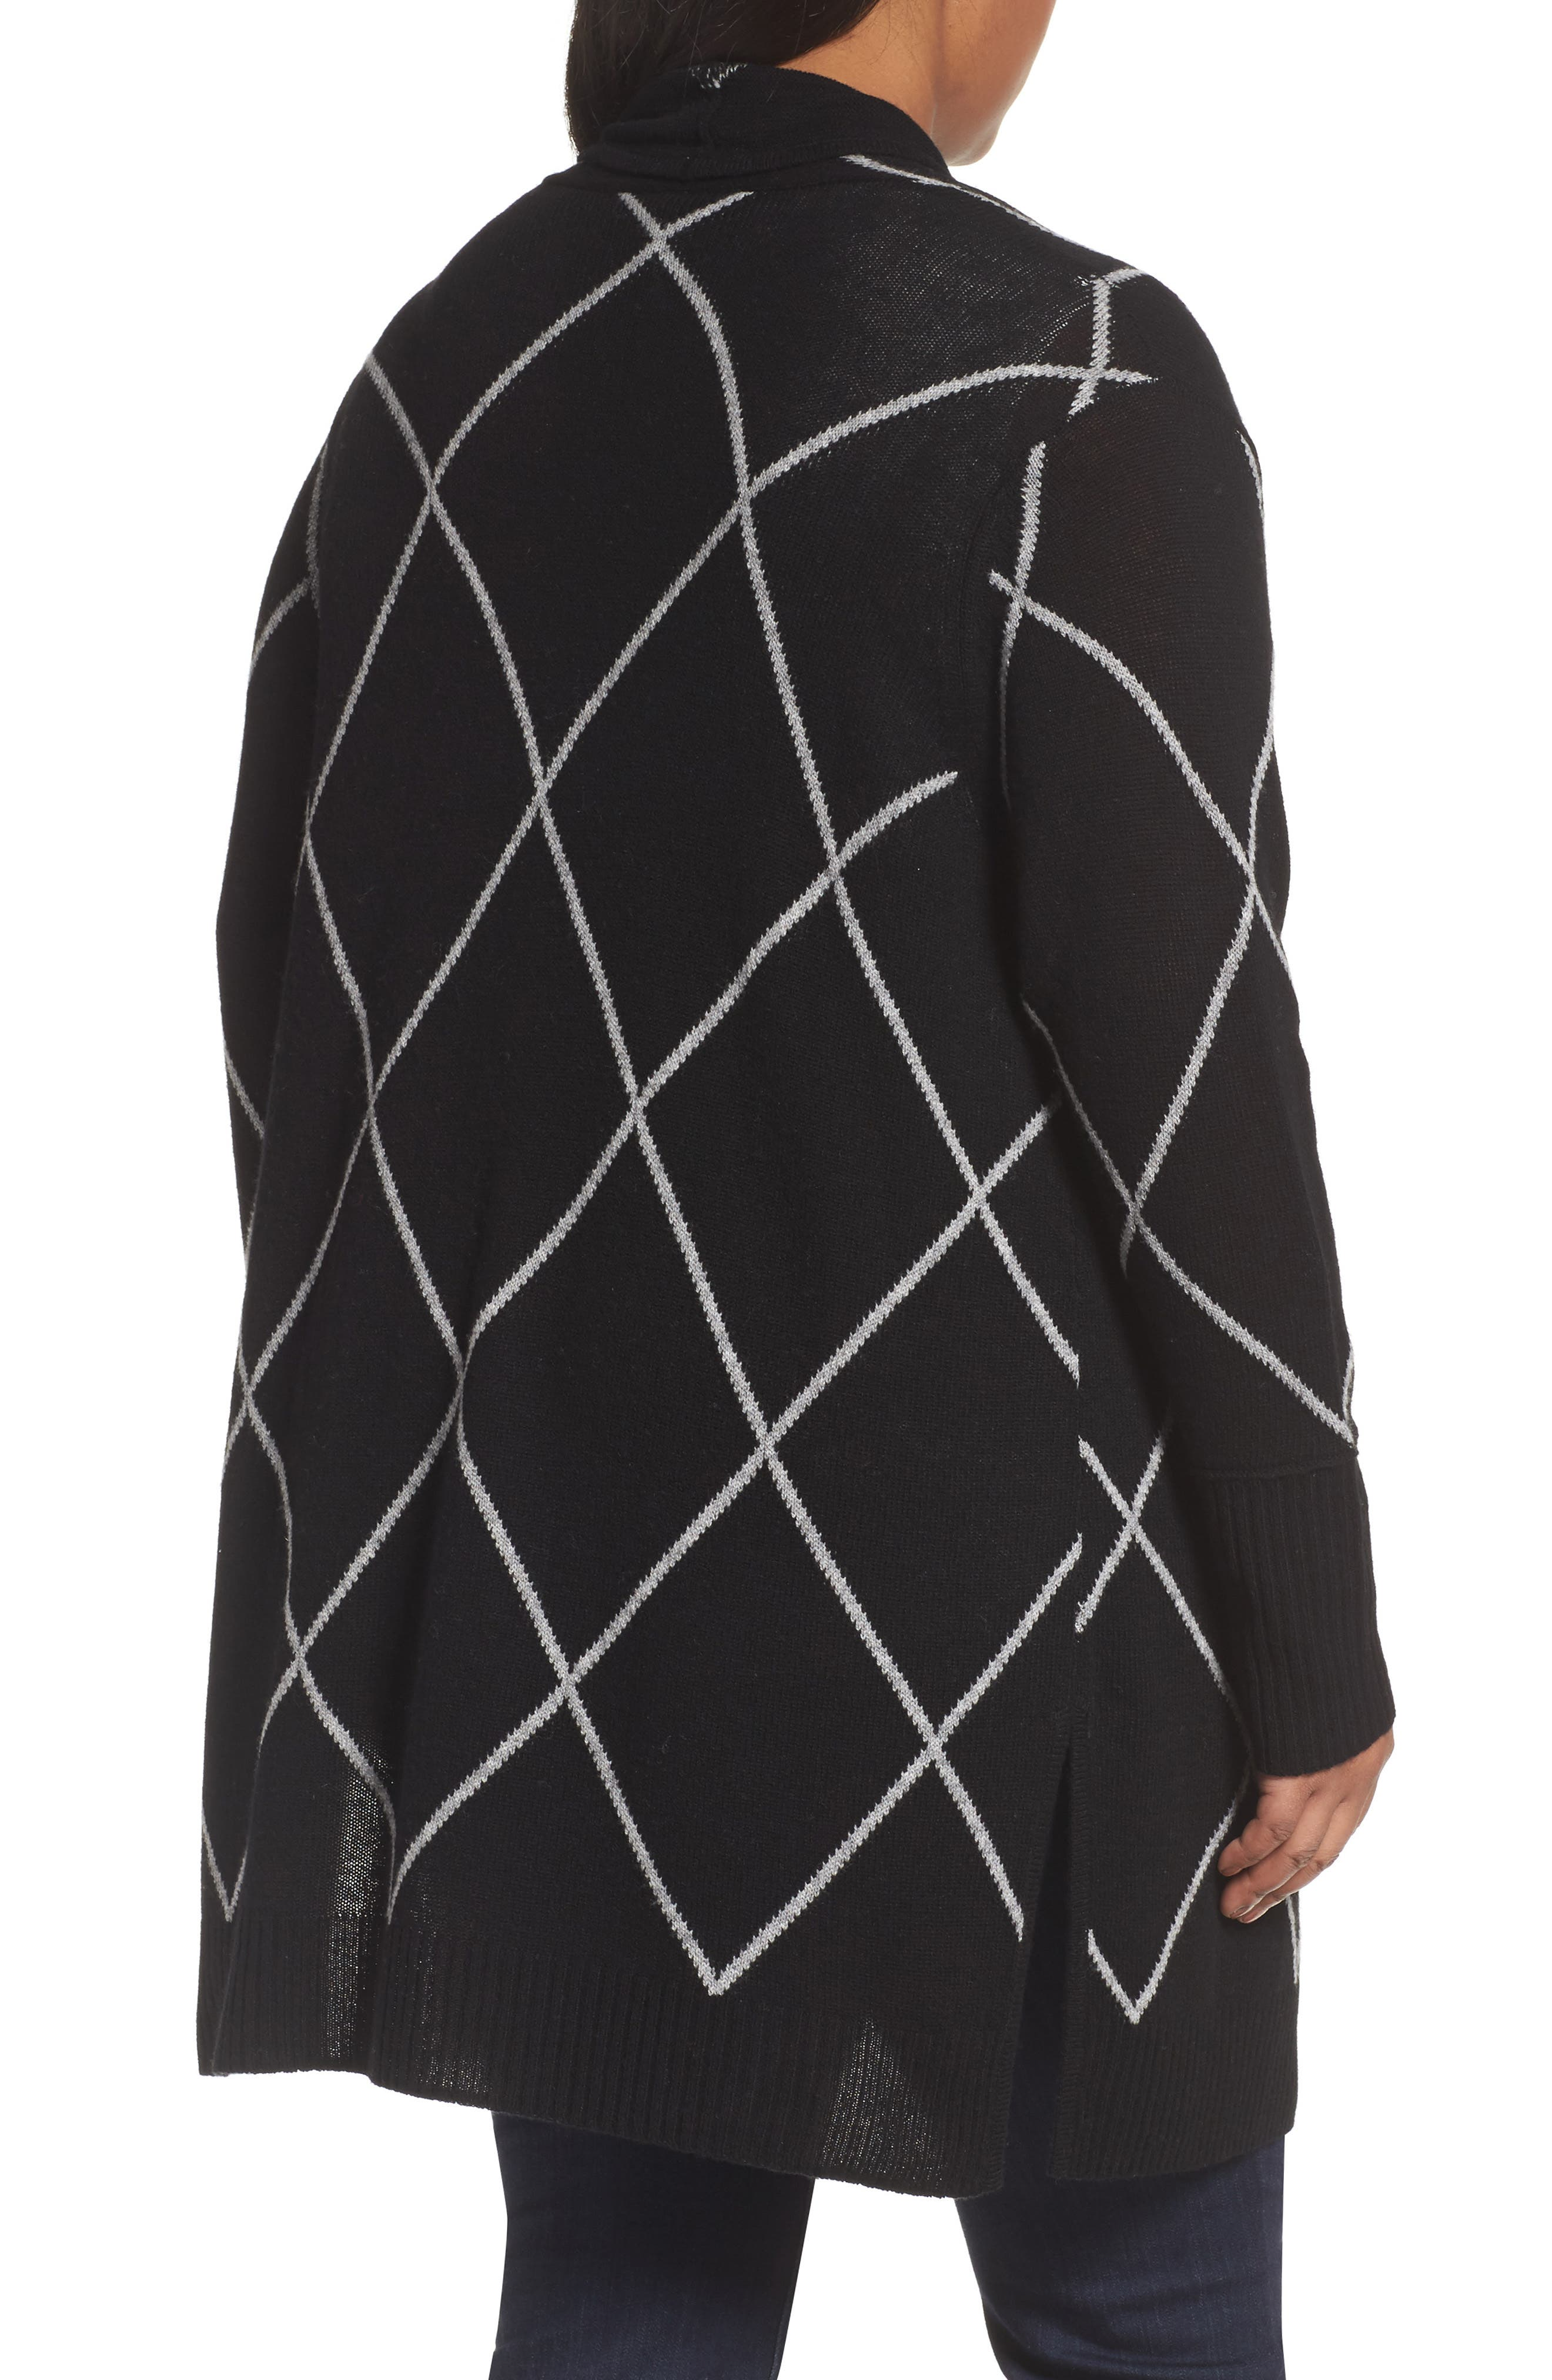 Windowpane Wool & Cashmere Cardigan,                             Alternate thumbnail 2, color,                             002